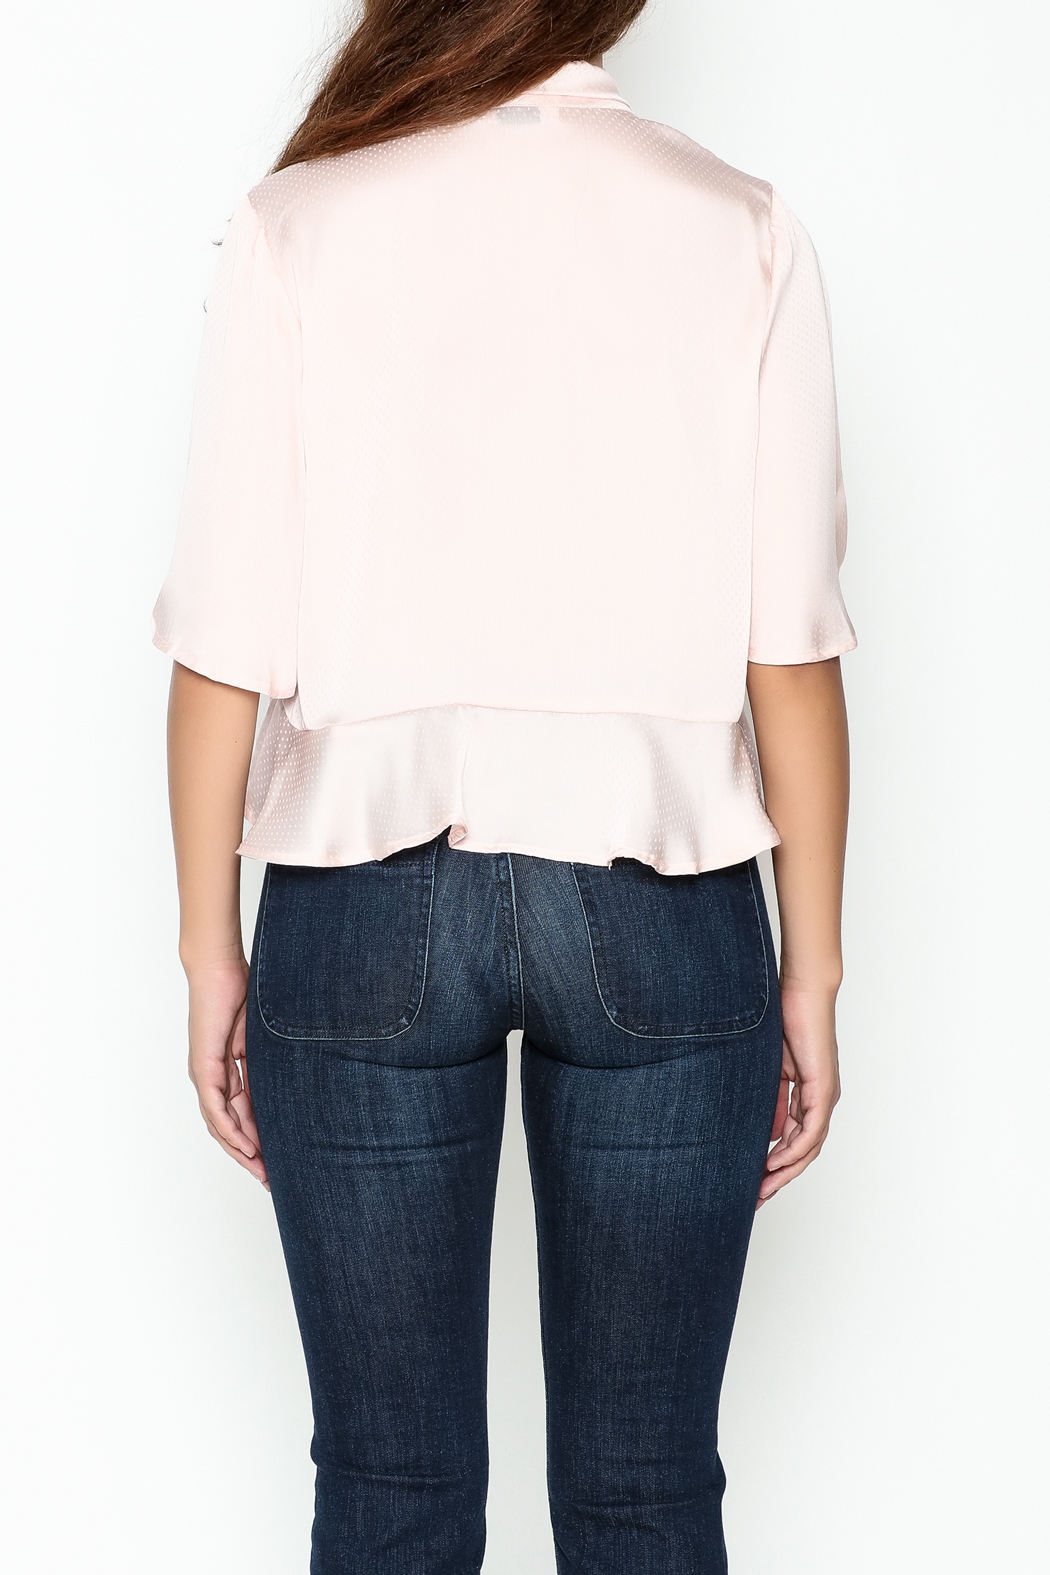 Ark & Co. Dotty Bow Blouse - Back Cropped Image